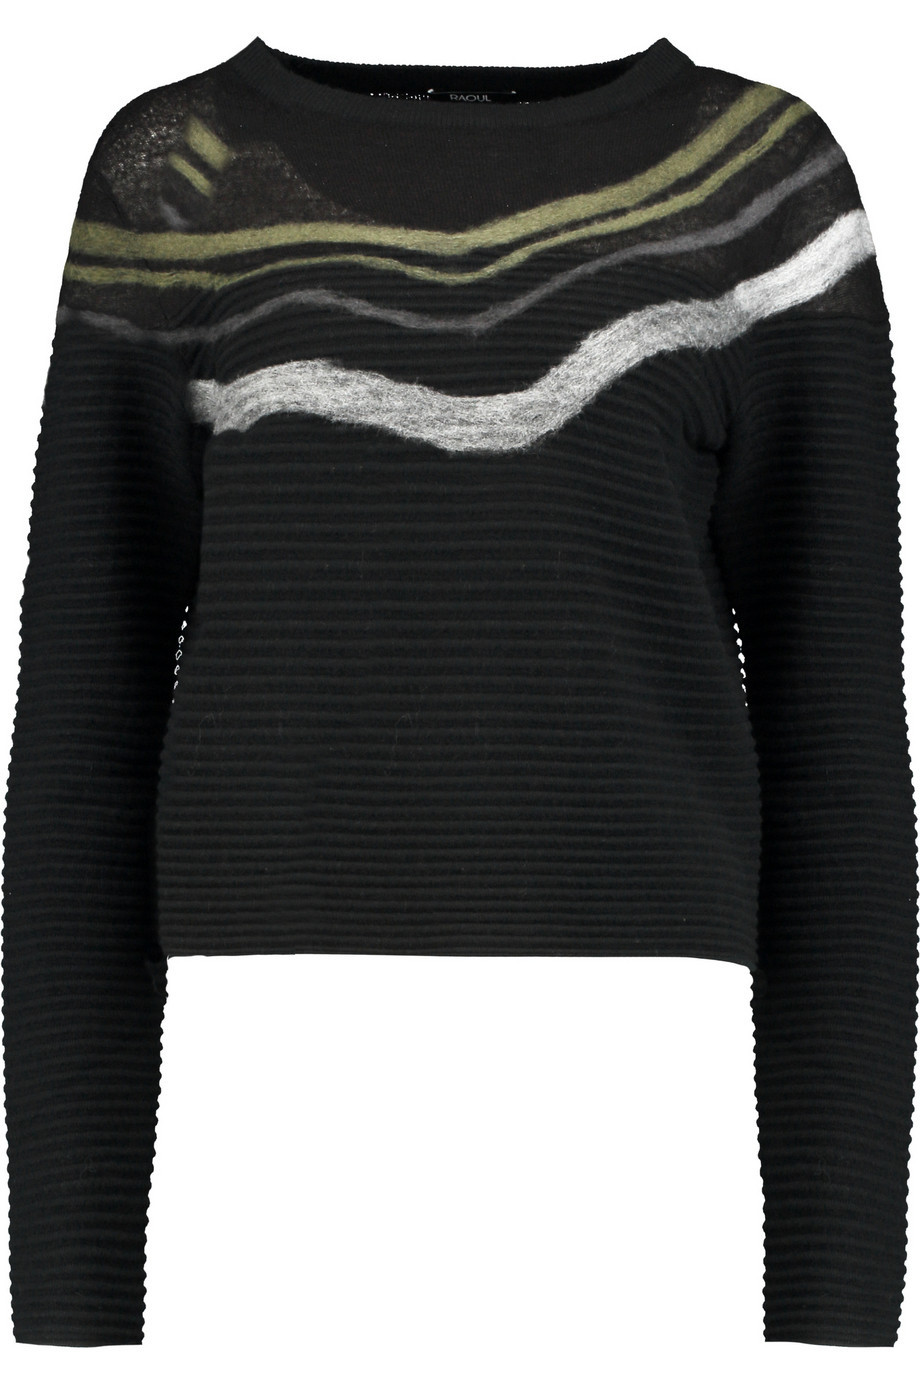 Intarsia Knit Sweater Black - neckline: slash/boat neckline; pattern: horizontal stripes; style: standard; secondary colour: khaki; predominant colour: black; occasions: casual; length: standard; fibres: nylon - mix; fit: standard fit; sleeve length: long sleeve; sleeve style: standard; texture group: knits/crochet; pattern type: knitted - fine stitch; pattern size: light/subtle; season: a/w 2015; wardrobe: highlight